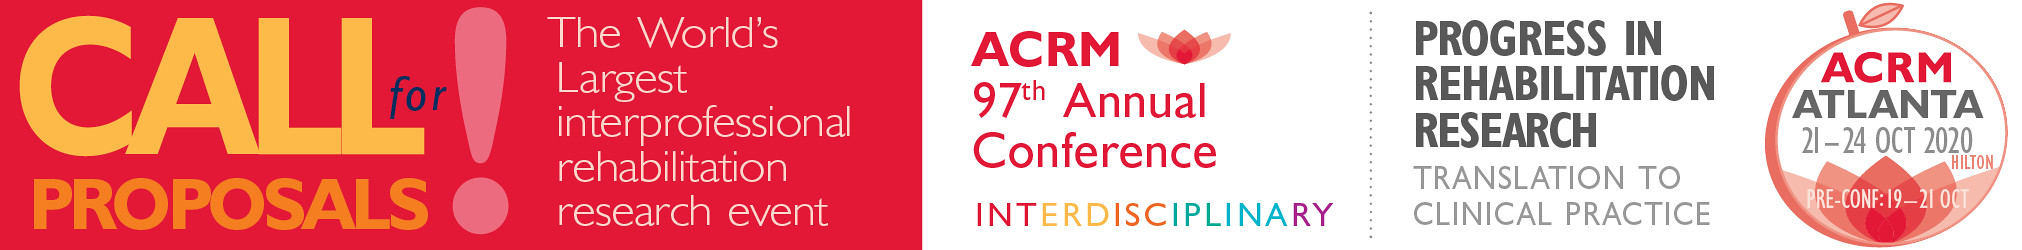 ACRM 2020 Annual Conference Call for Proposals